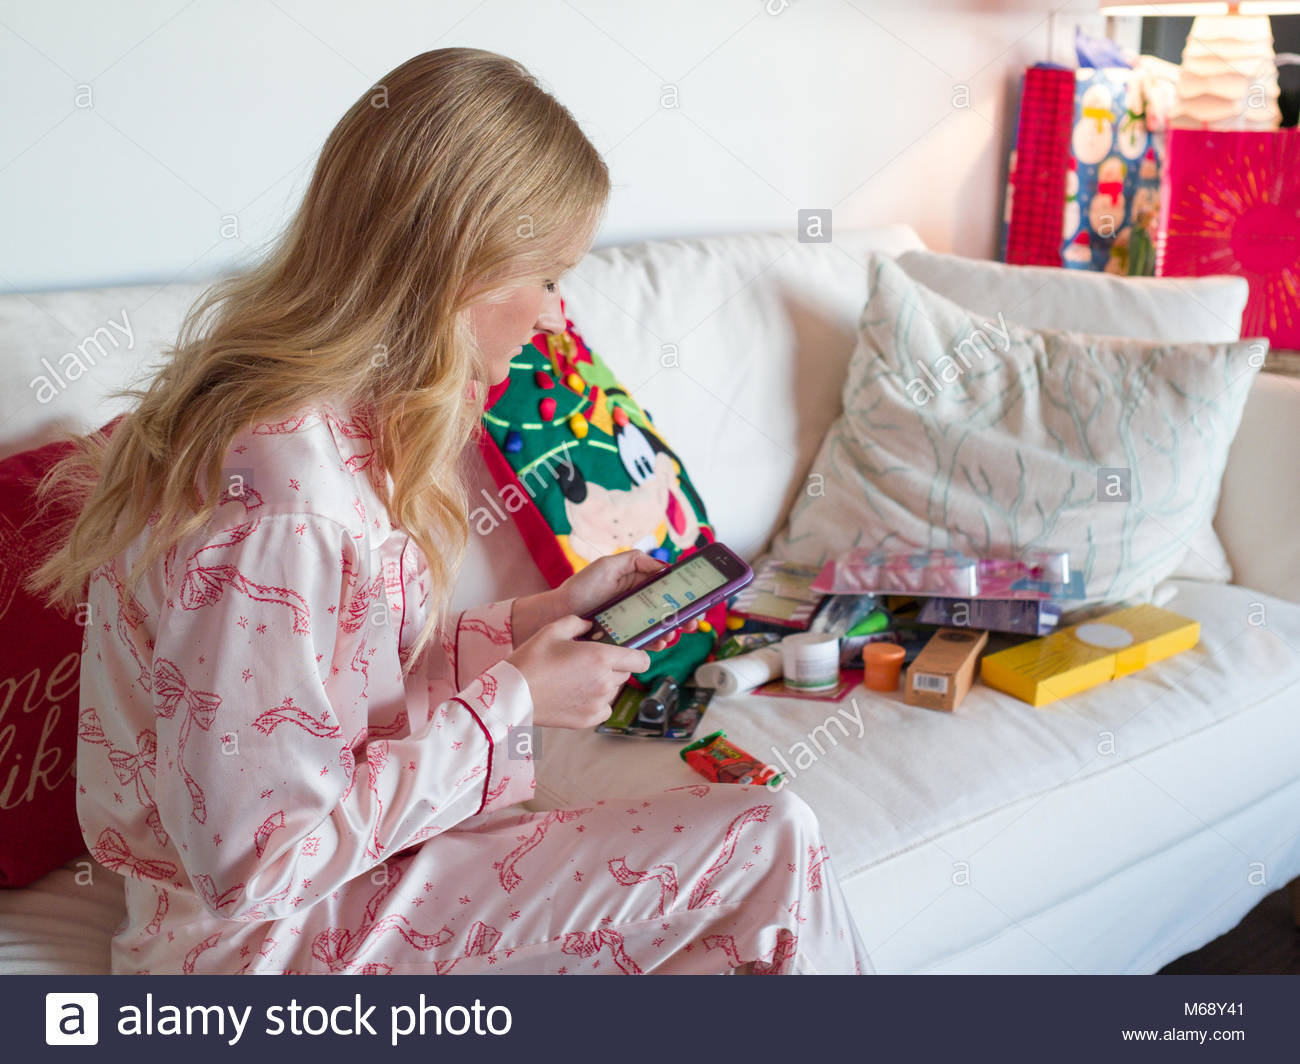 Young woman wearing pajamas sitting on couch looking at her IPhone on Christmas morning, USA - Stock Image